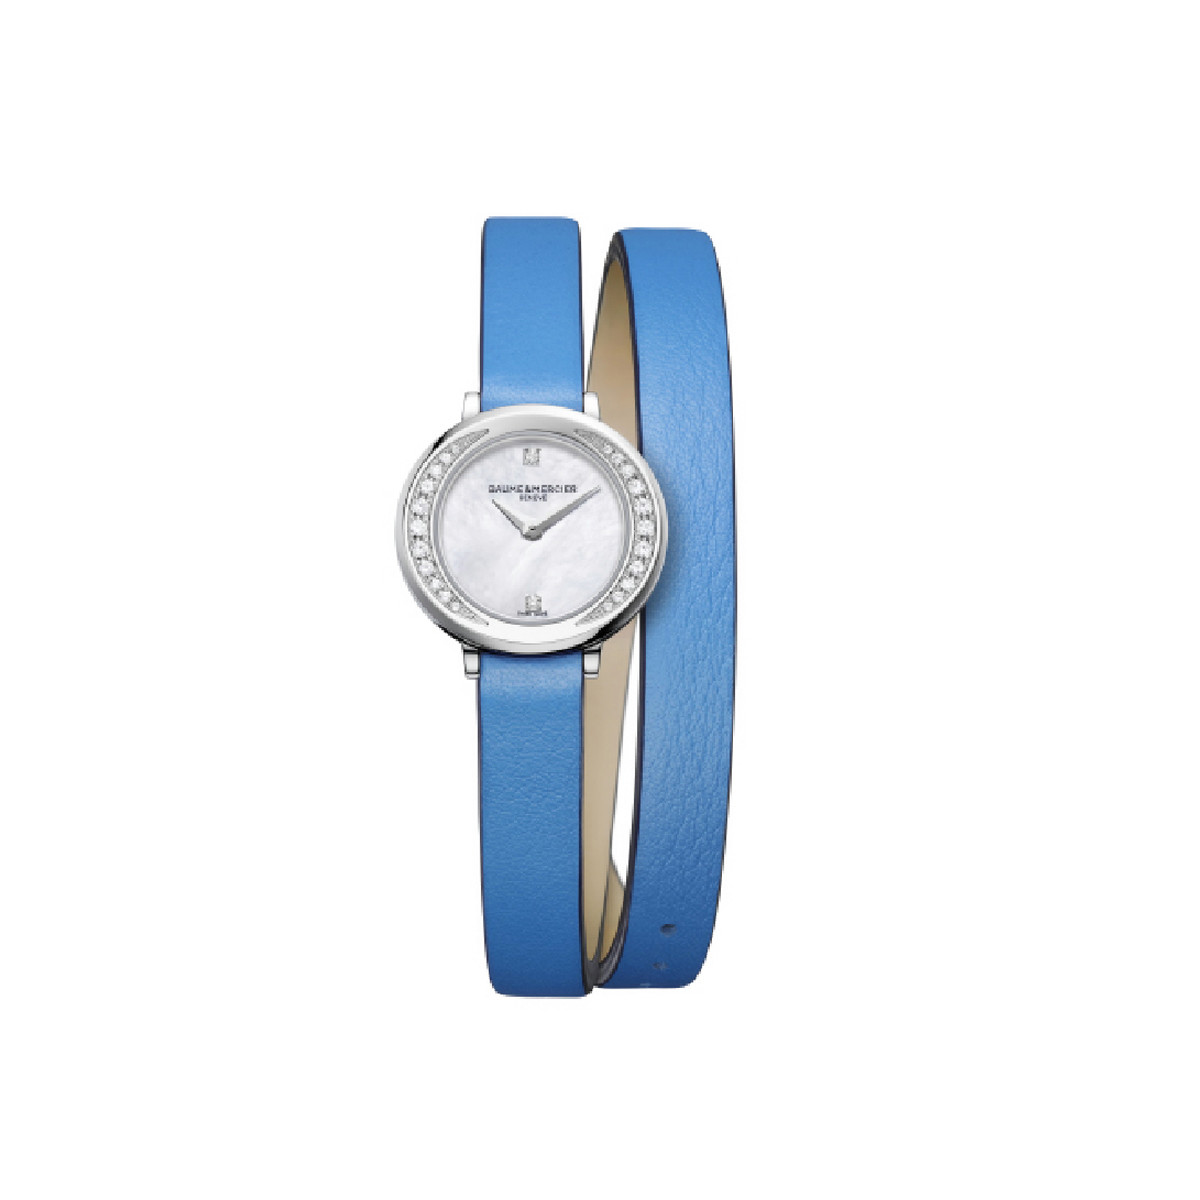 BAUME & MERCIER PROMESSE WATCH